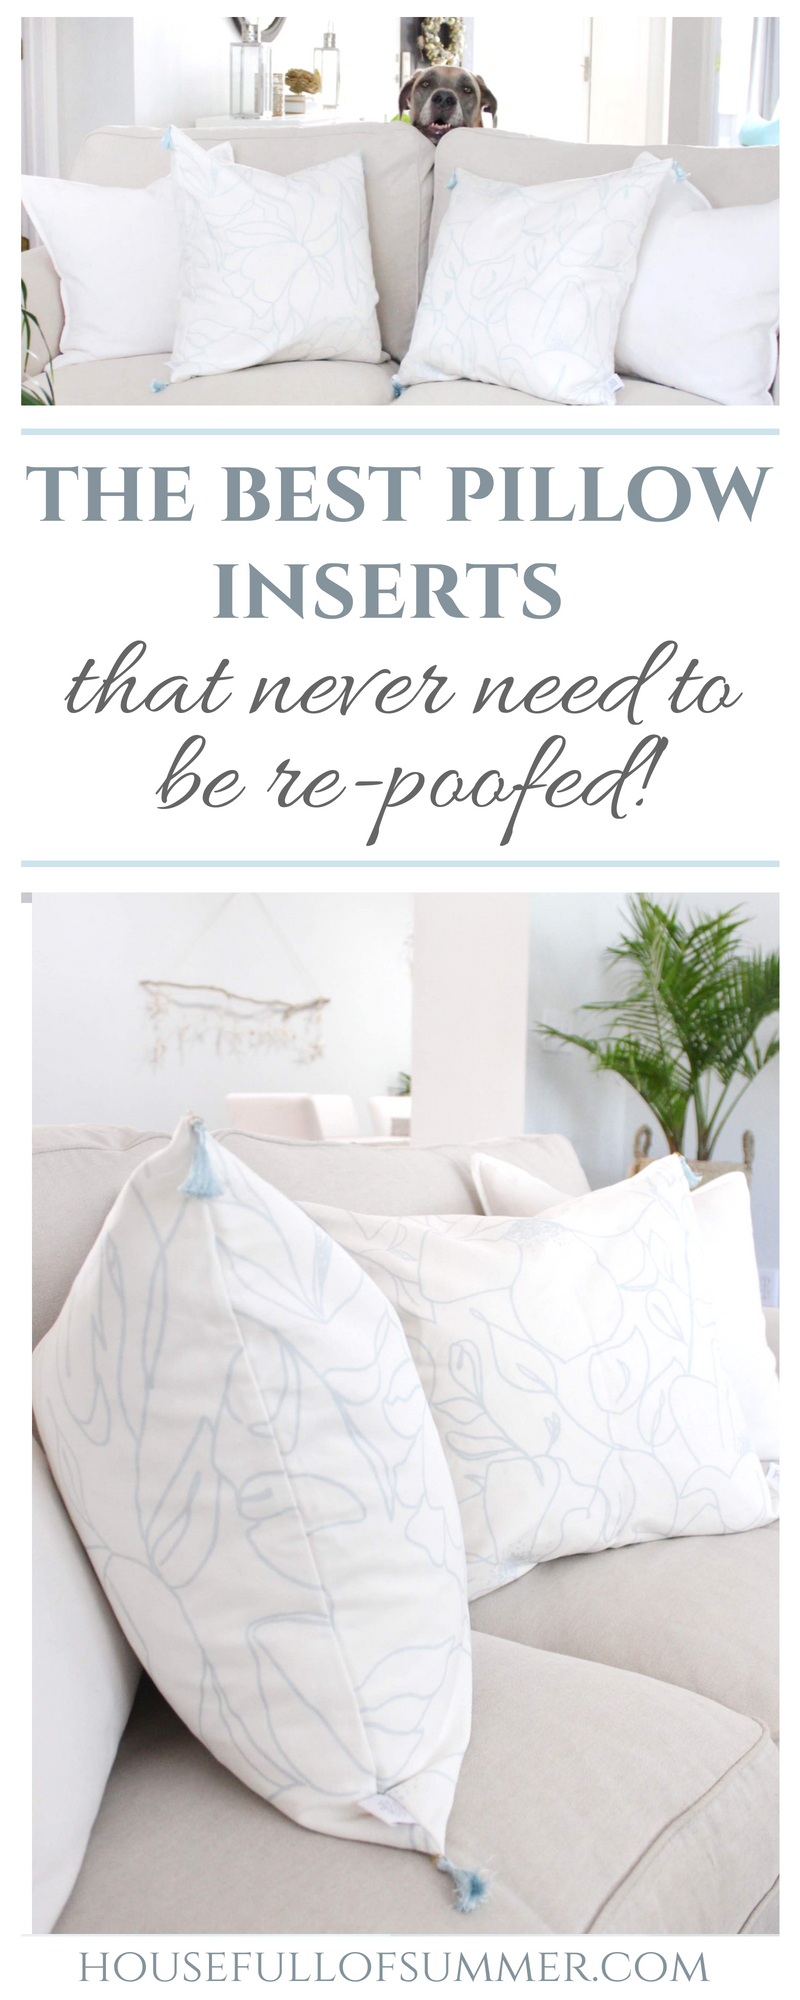 the best throw pillow inserts that